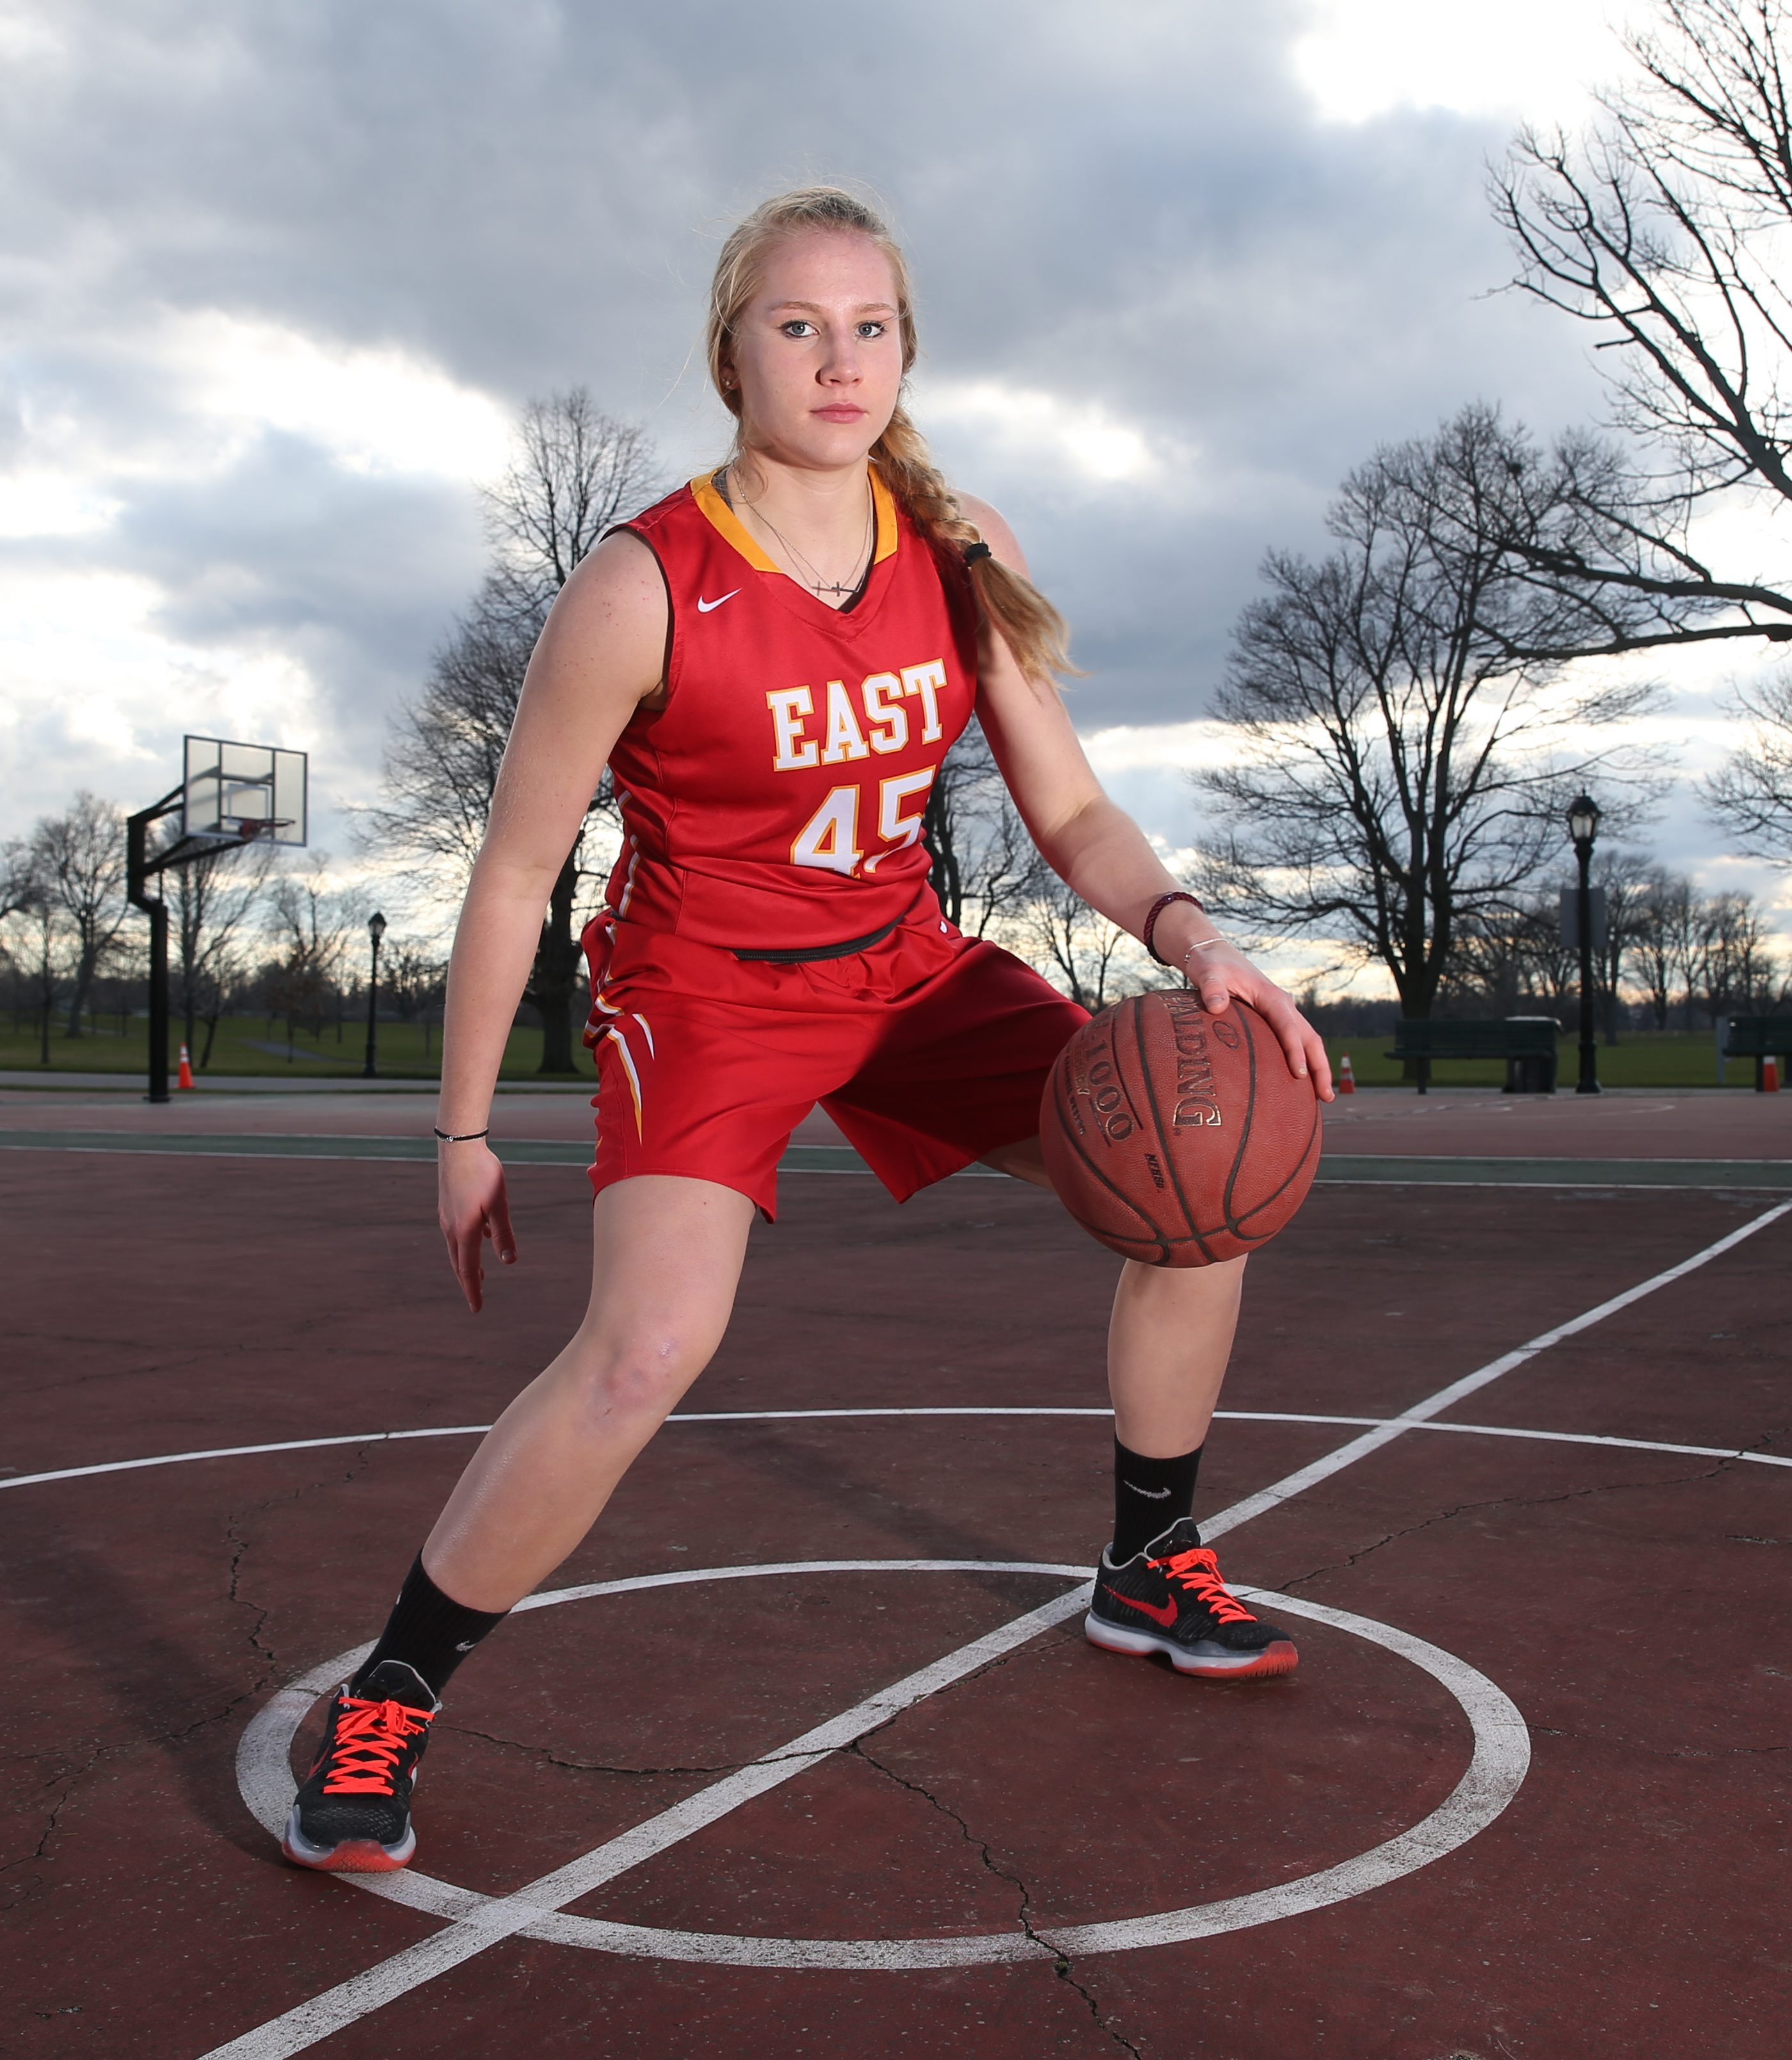 All Western NY basketball player Erica Martinsen of  Williamsville East poses for a cover shot at Delaware Park in Buffalo,NY on Tuesday, April 12, 2016.  (James P. McCoy/ Buffalo News)